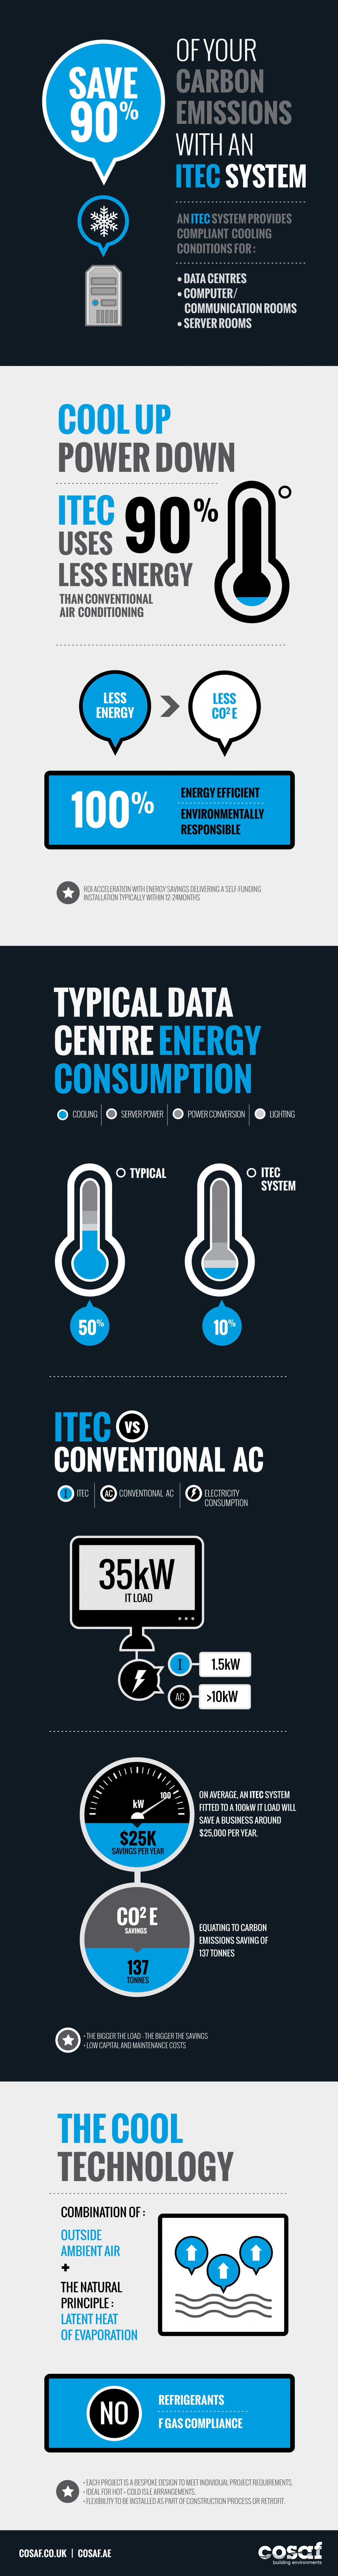 Save Carbon Emissions with an IT Evaporative Cooling System Infographic